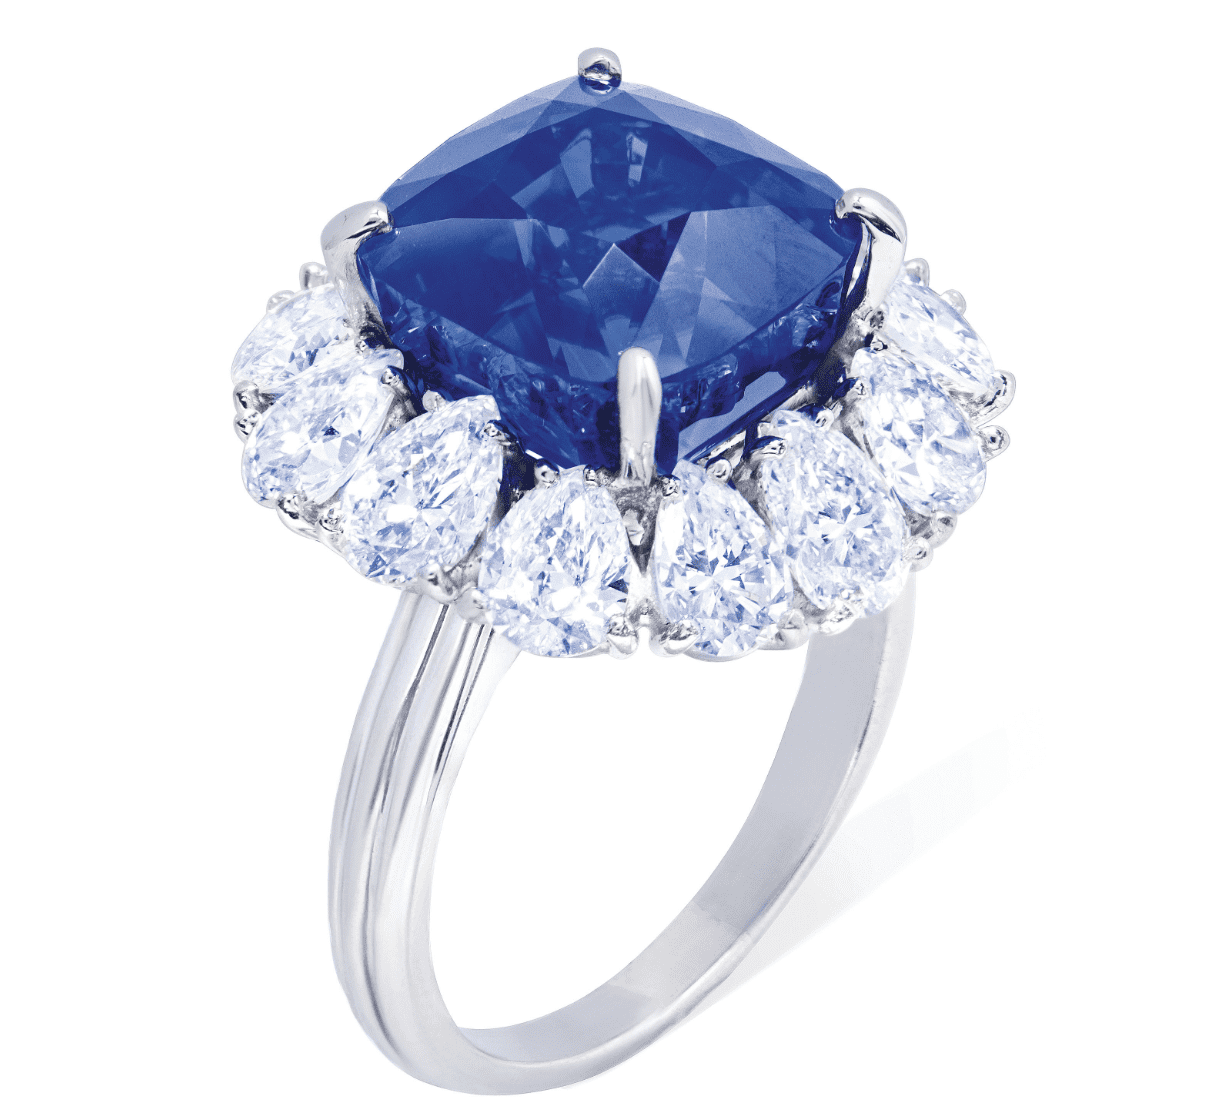 Kashmir sapphire and diamond ring